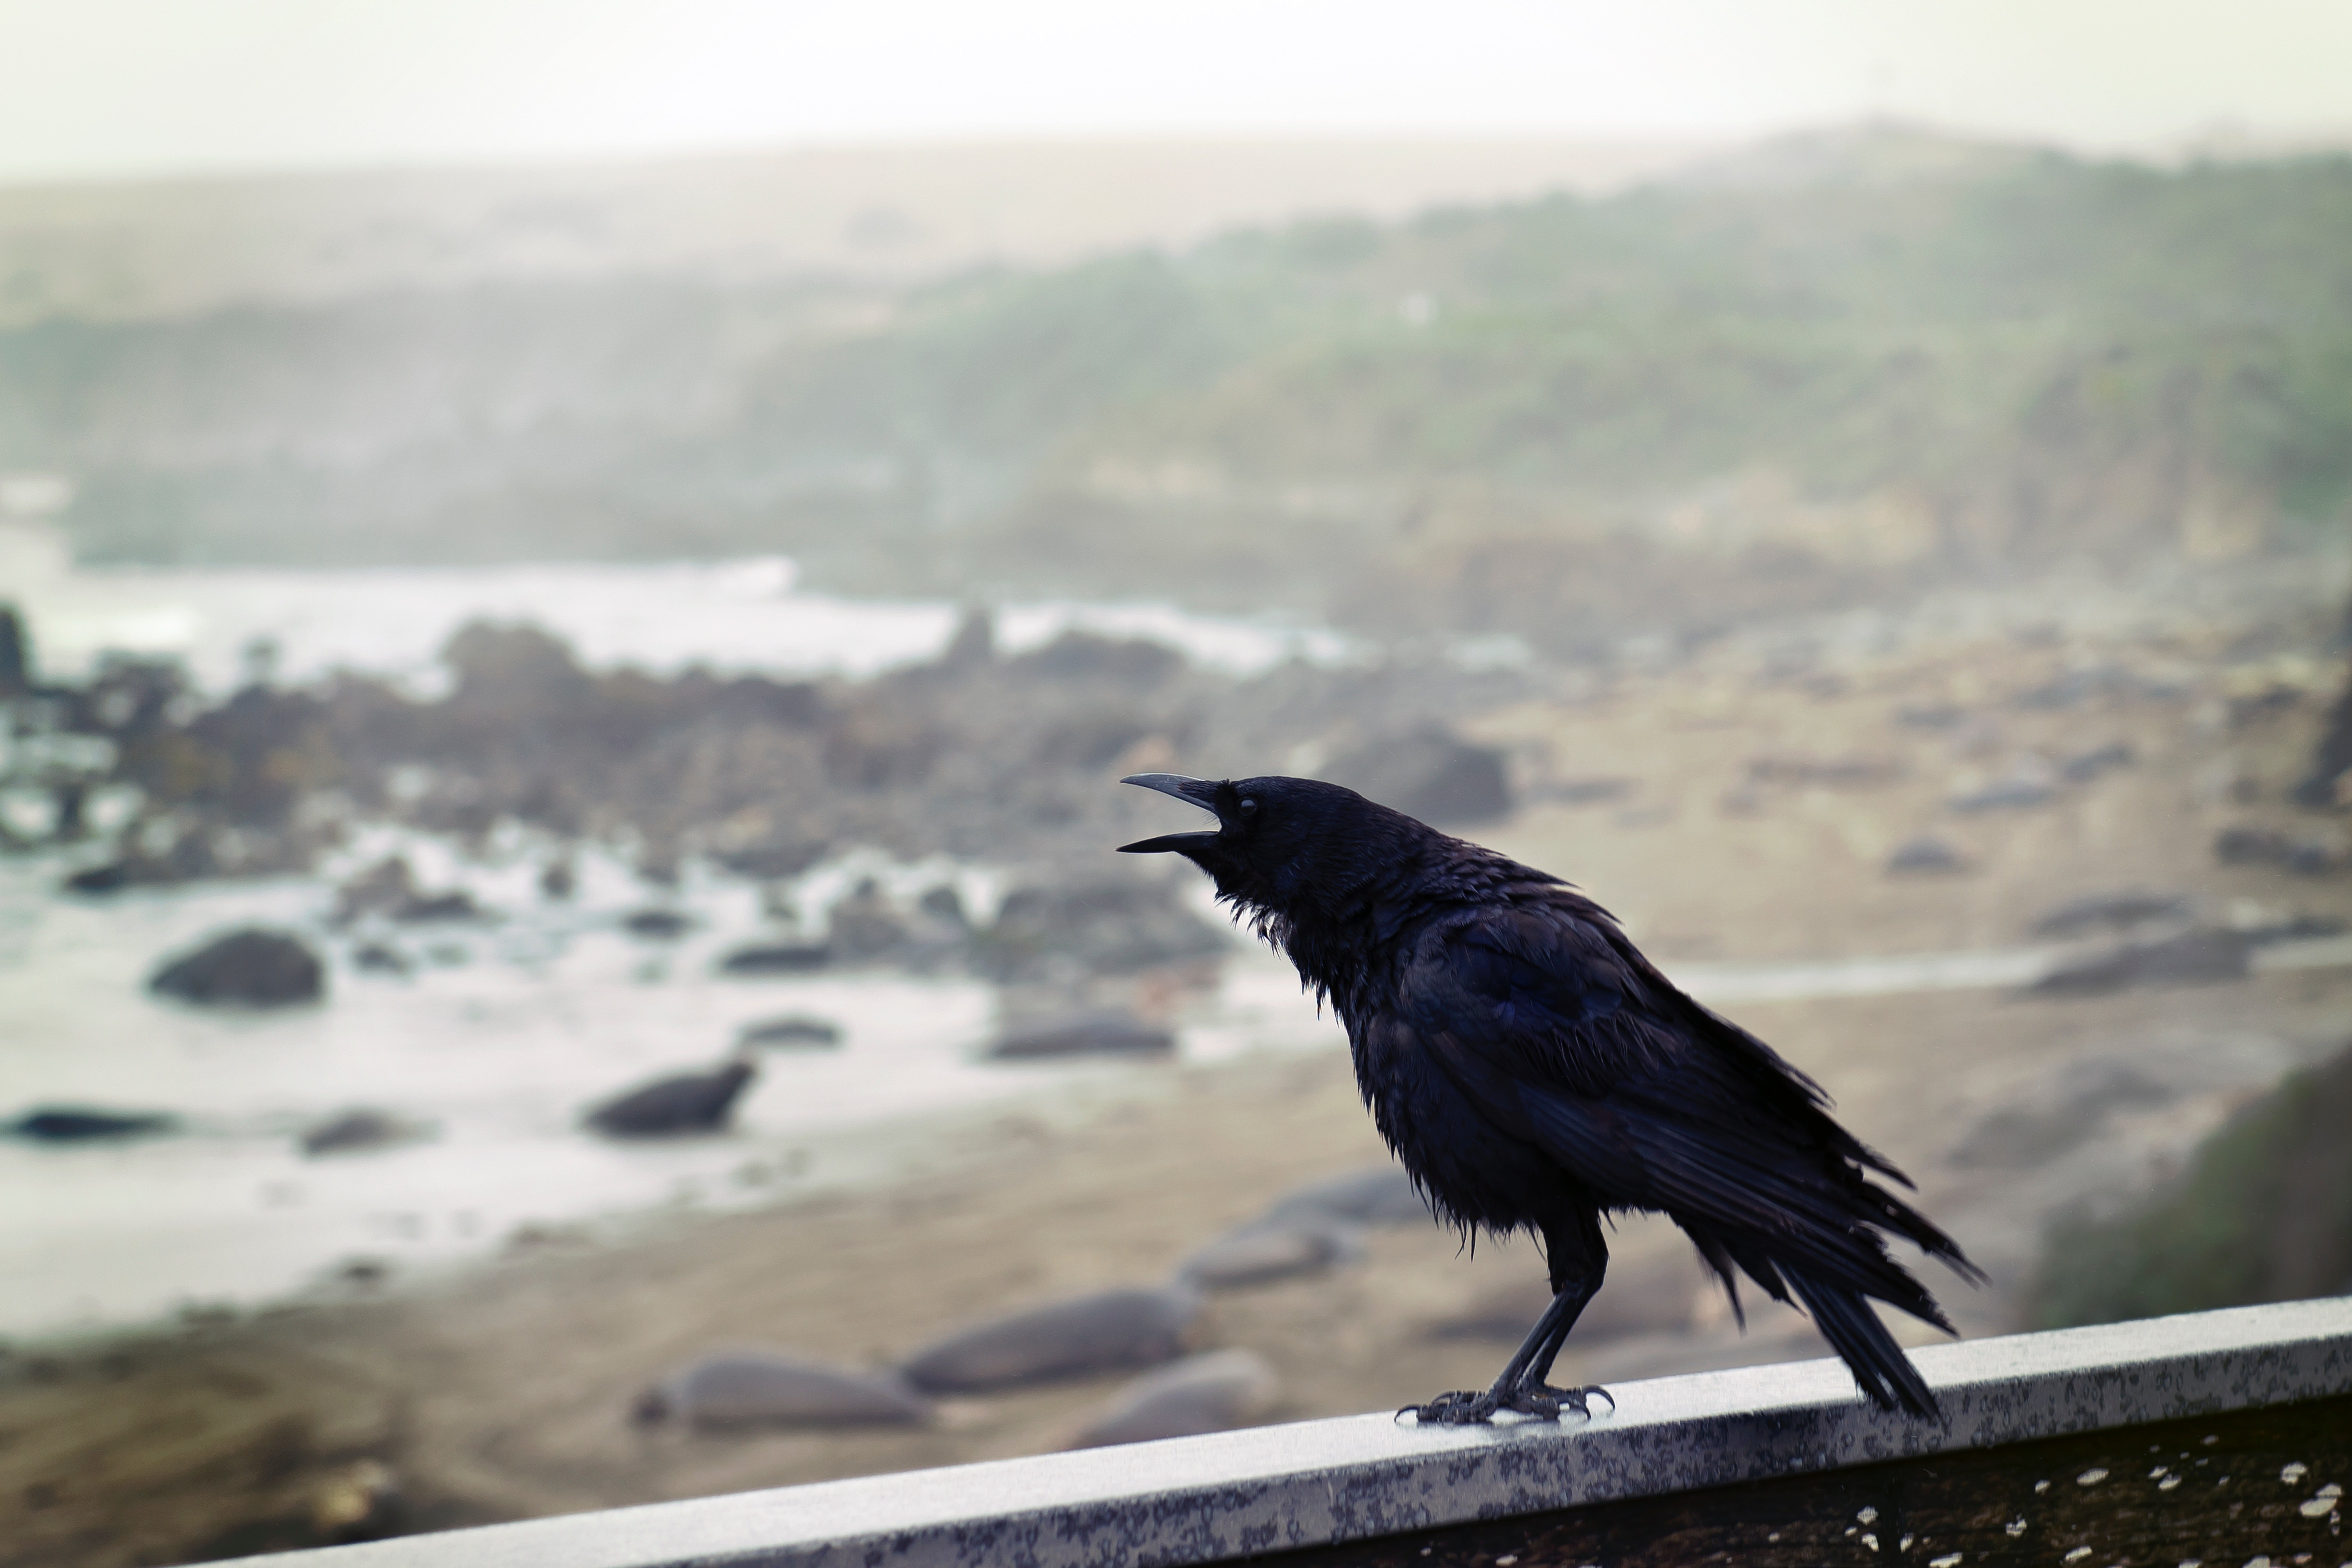 Pictured - A black bird perching on a concrete wall with an ocean view | Source: Pixabay